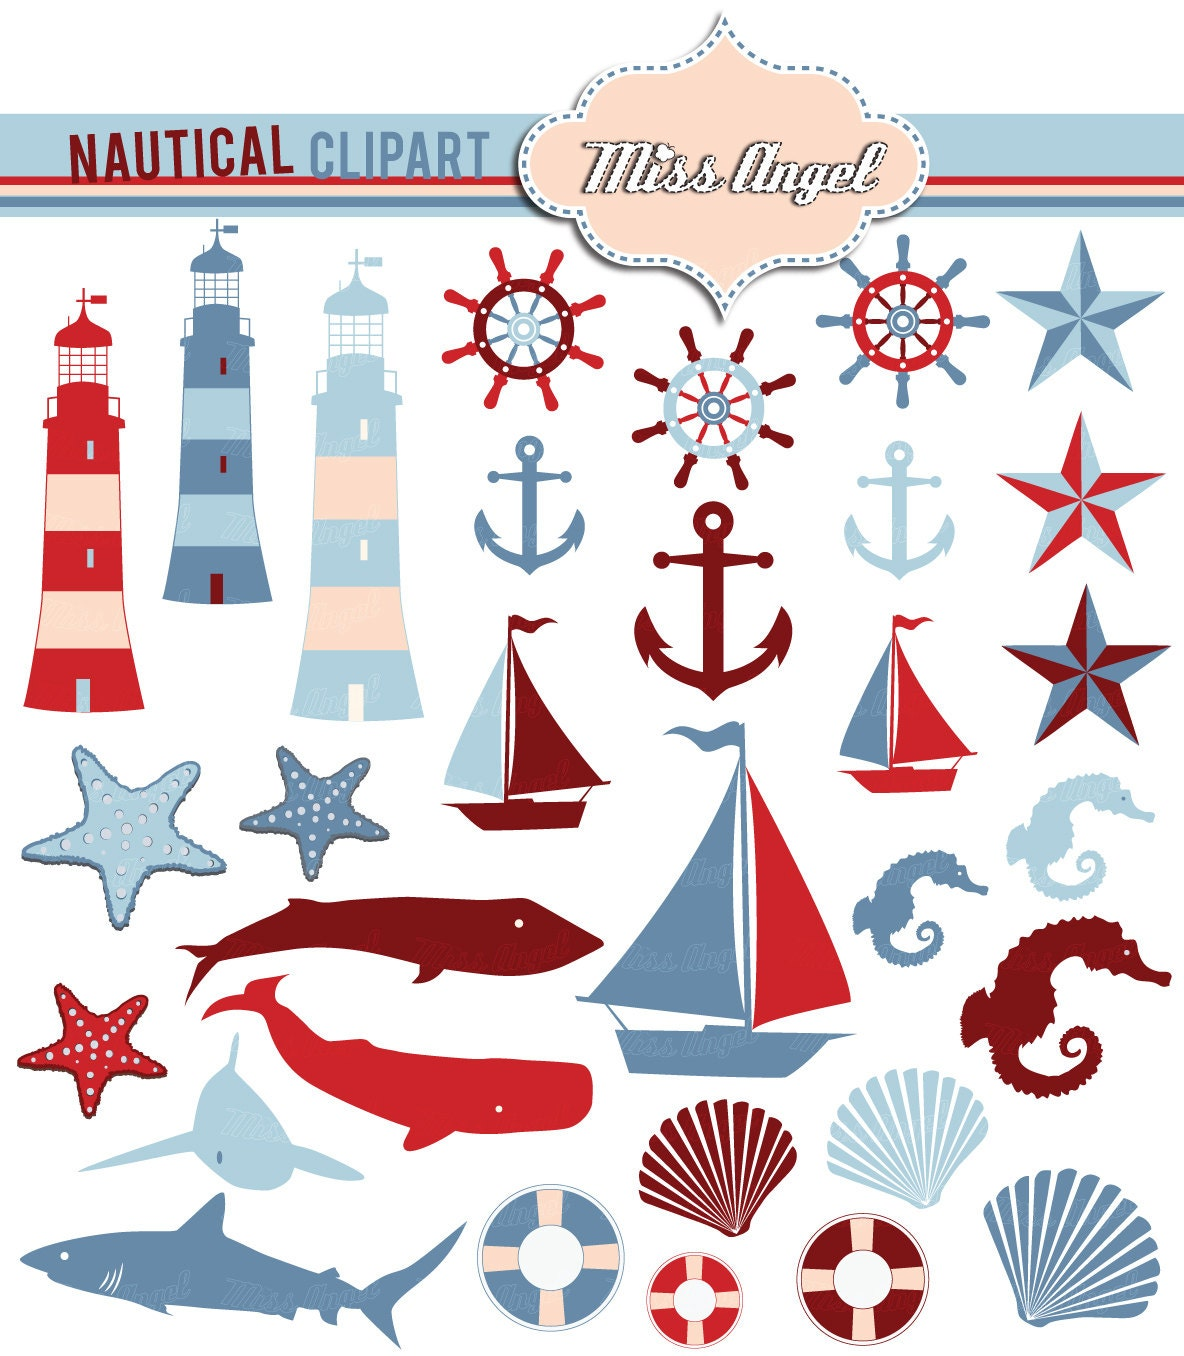 Nautical Clipart Blue Red. 31 Digital scrapbook nautical